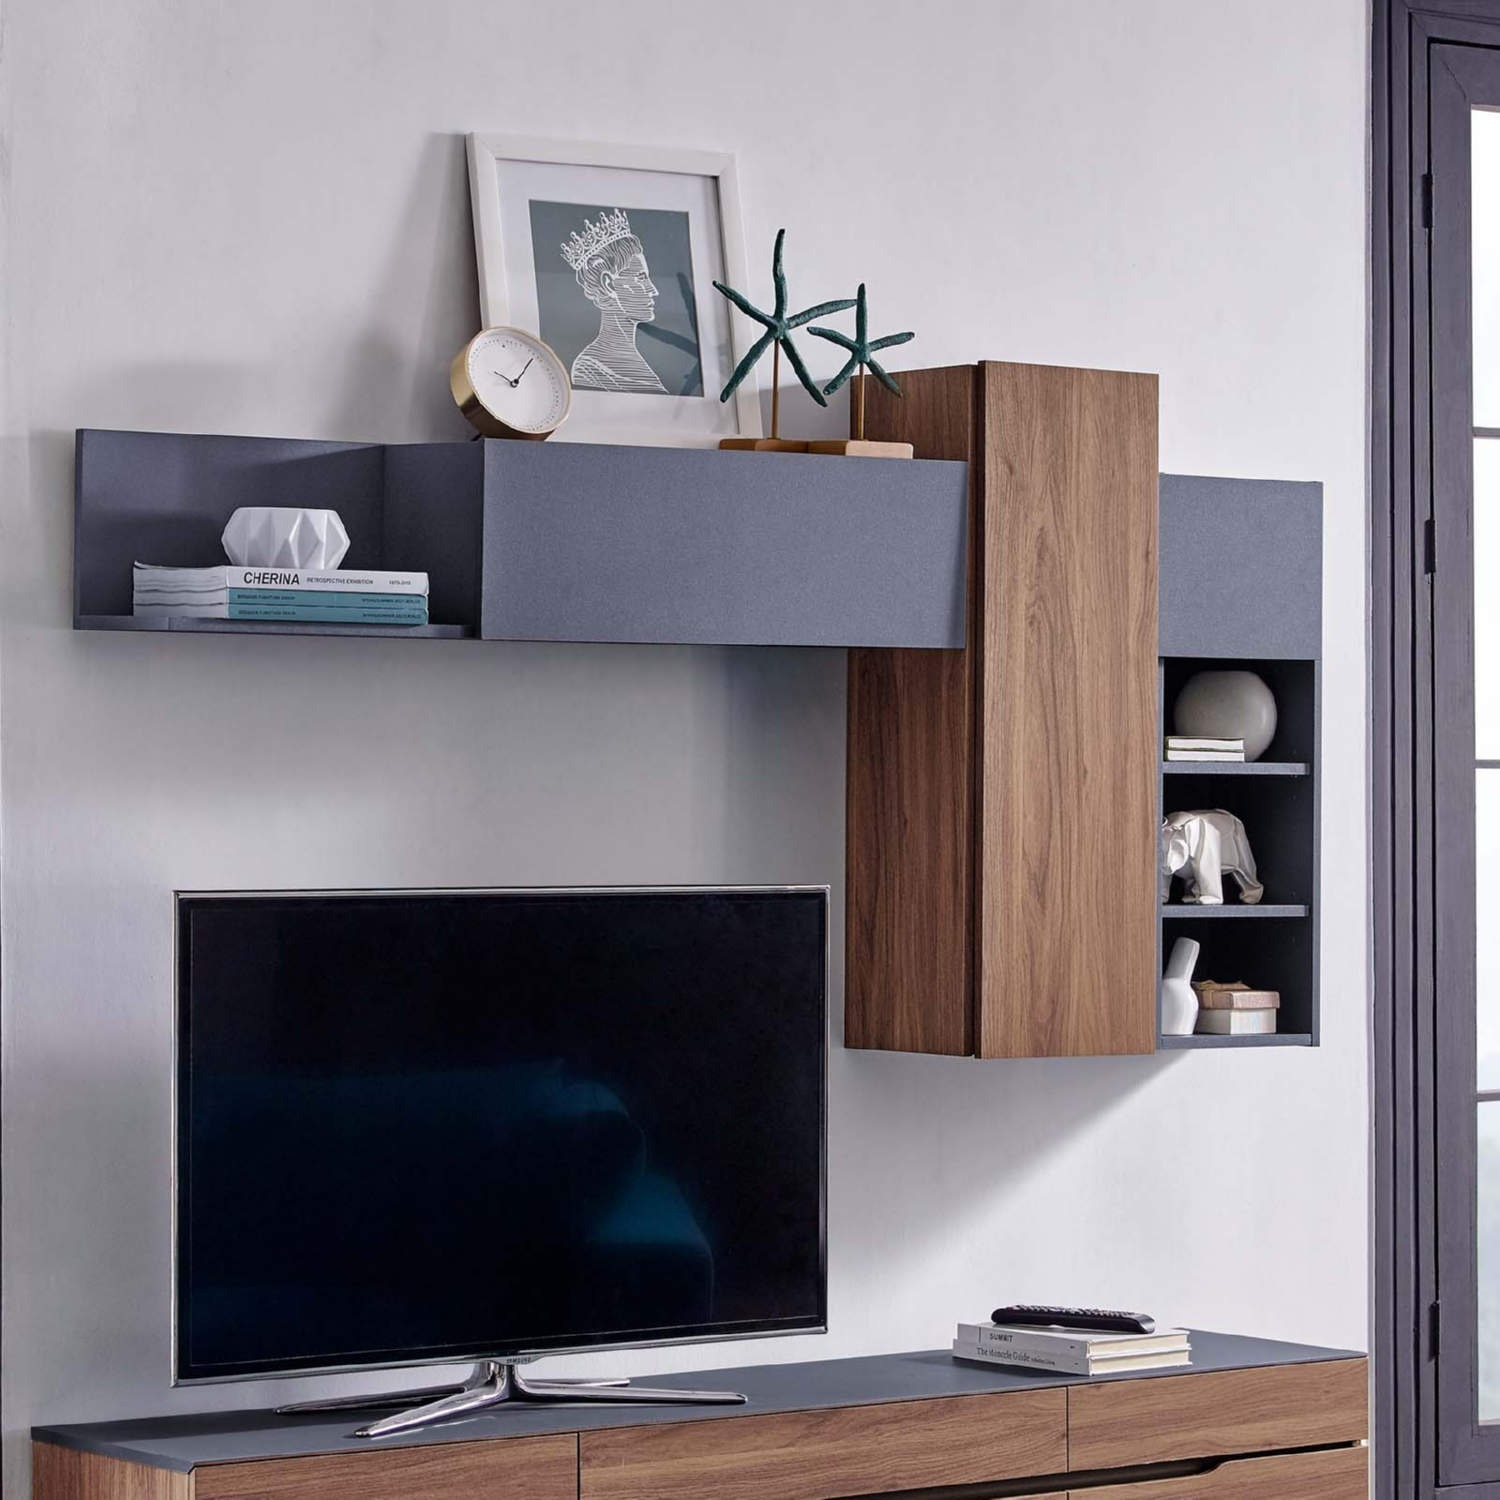 Wall Mounted Shelves In Gray & Walnut Finish - image-2